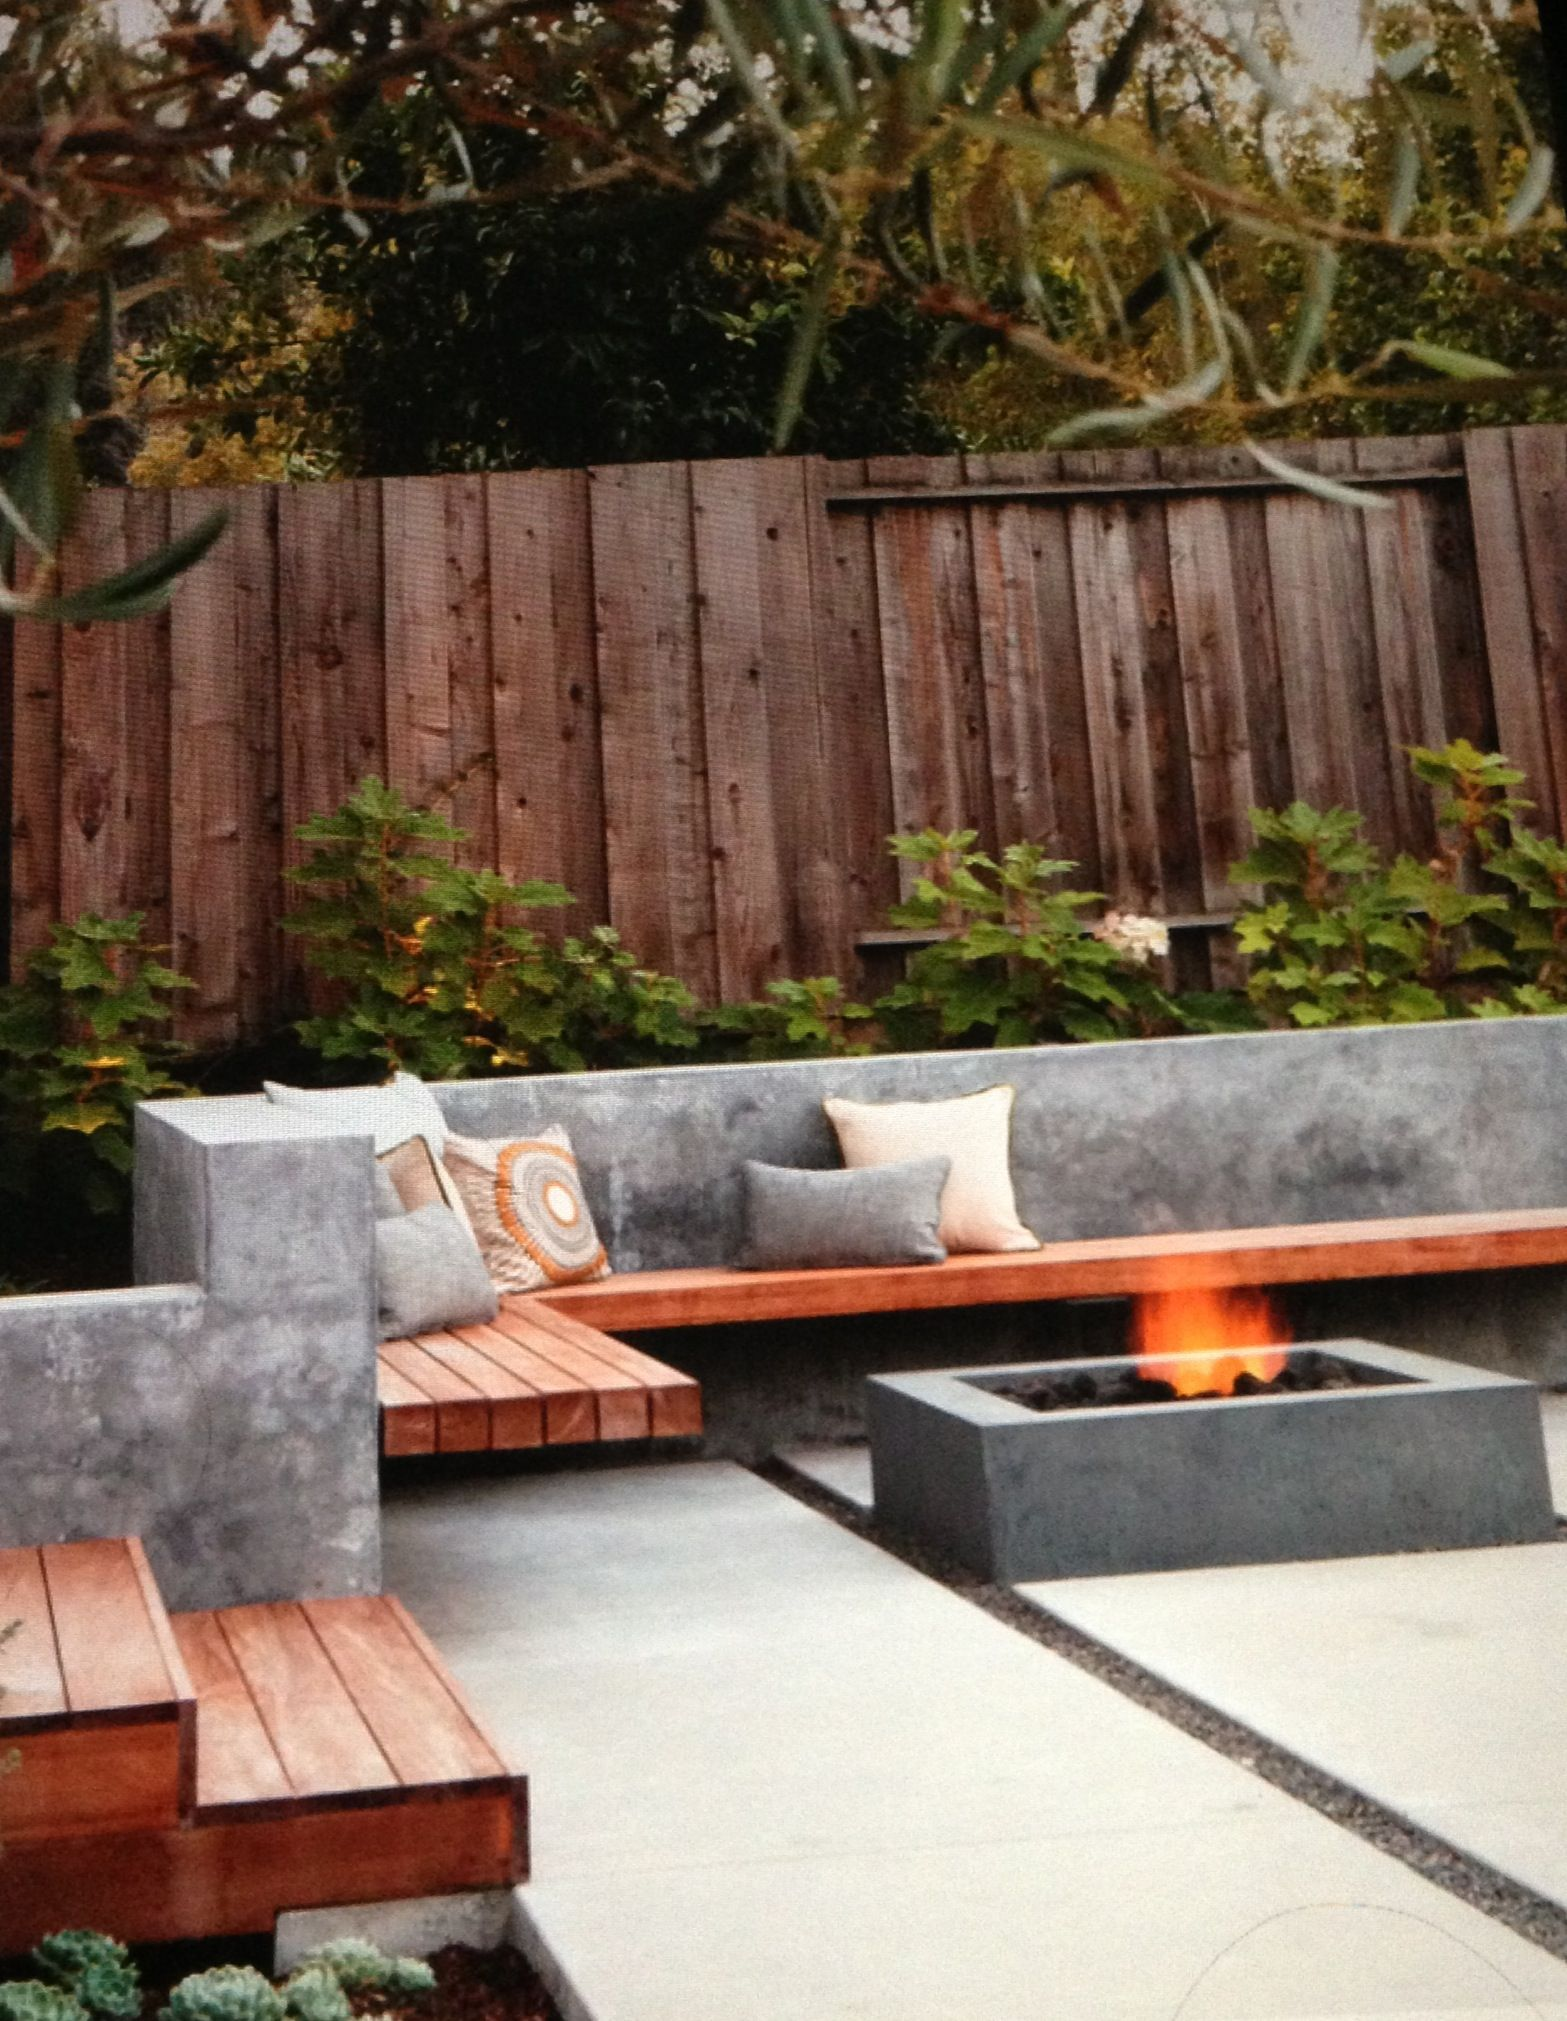 Sleek modern patio - concrete and wood | Small backyard ... on Modern Concrete Backyard id=49670